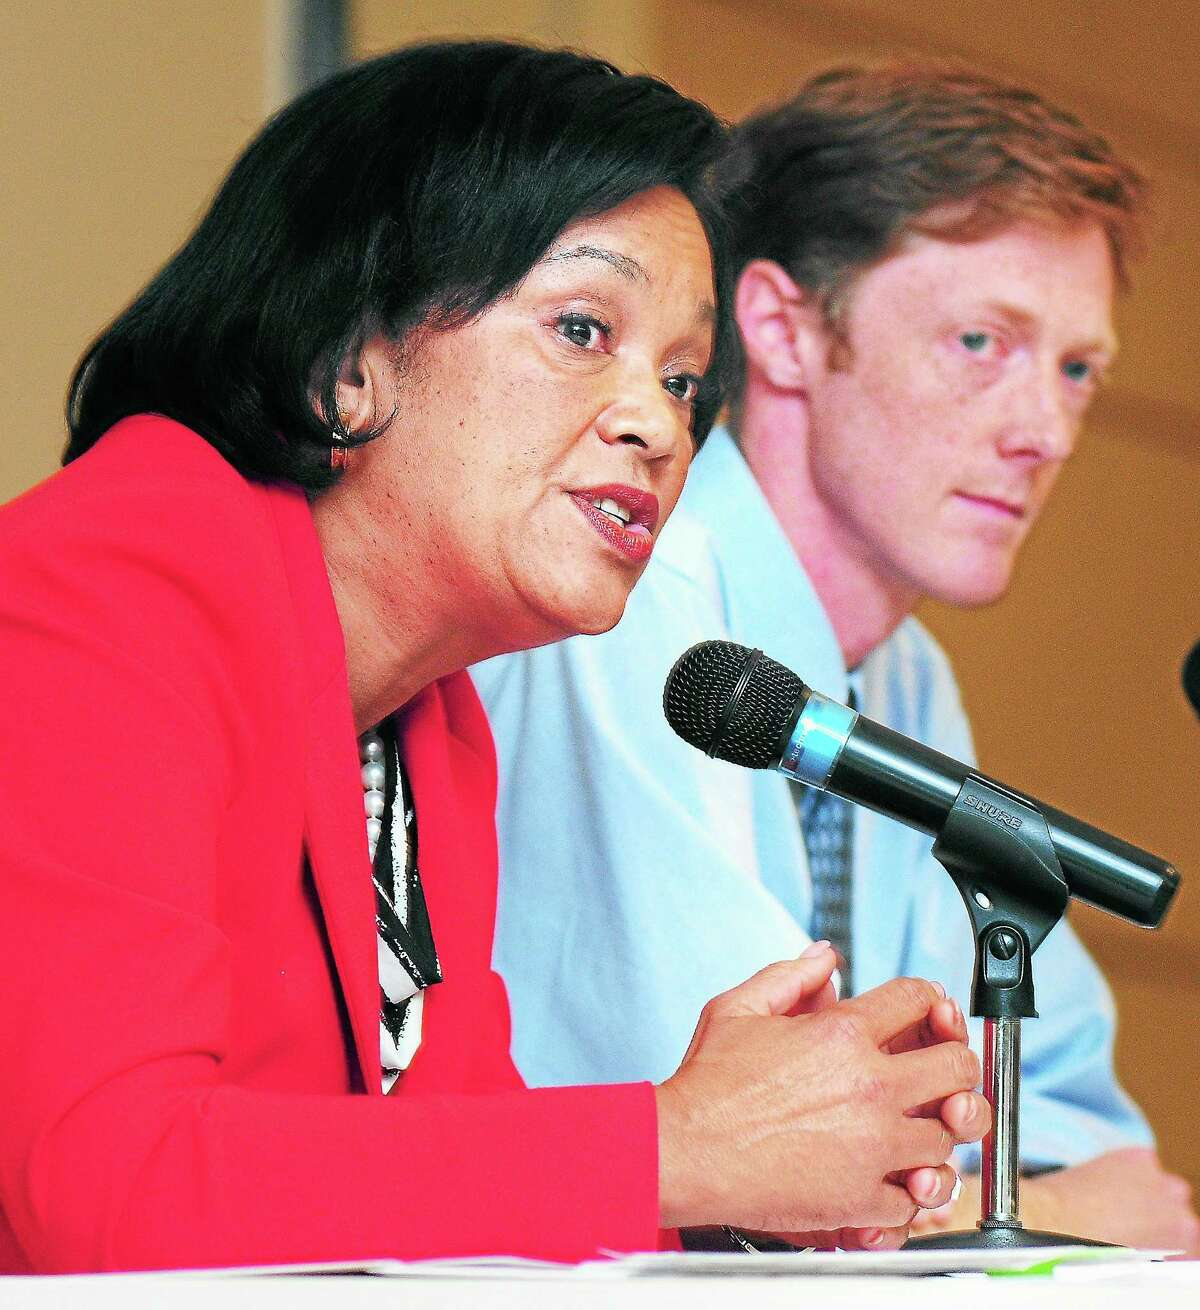 (Arnold Gold — New Haven Register) New Haven mayoral candidate Toni Harp (left) answers a question during a debate with Justin Elicker (right) at Gateway Community College in New Haven on 10/22/2013.